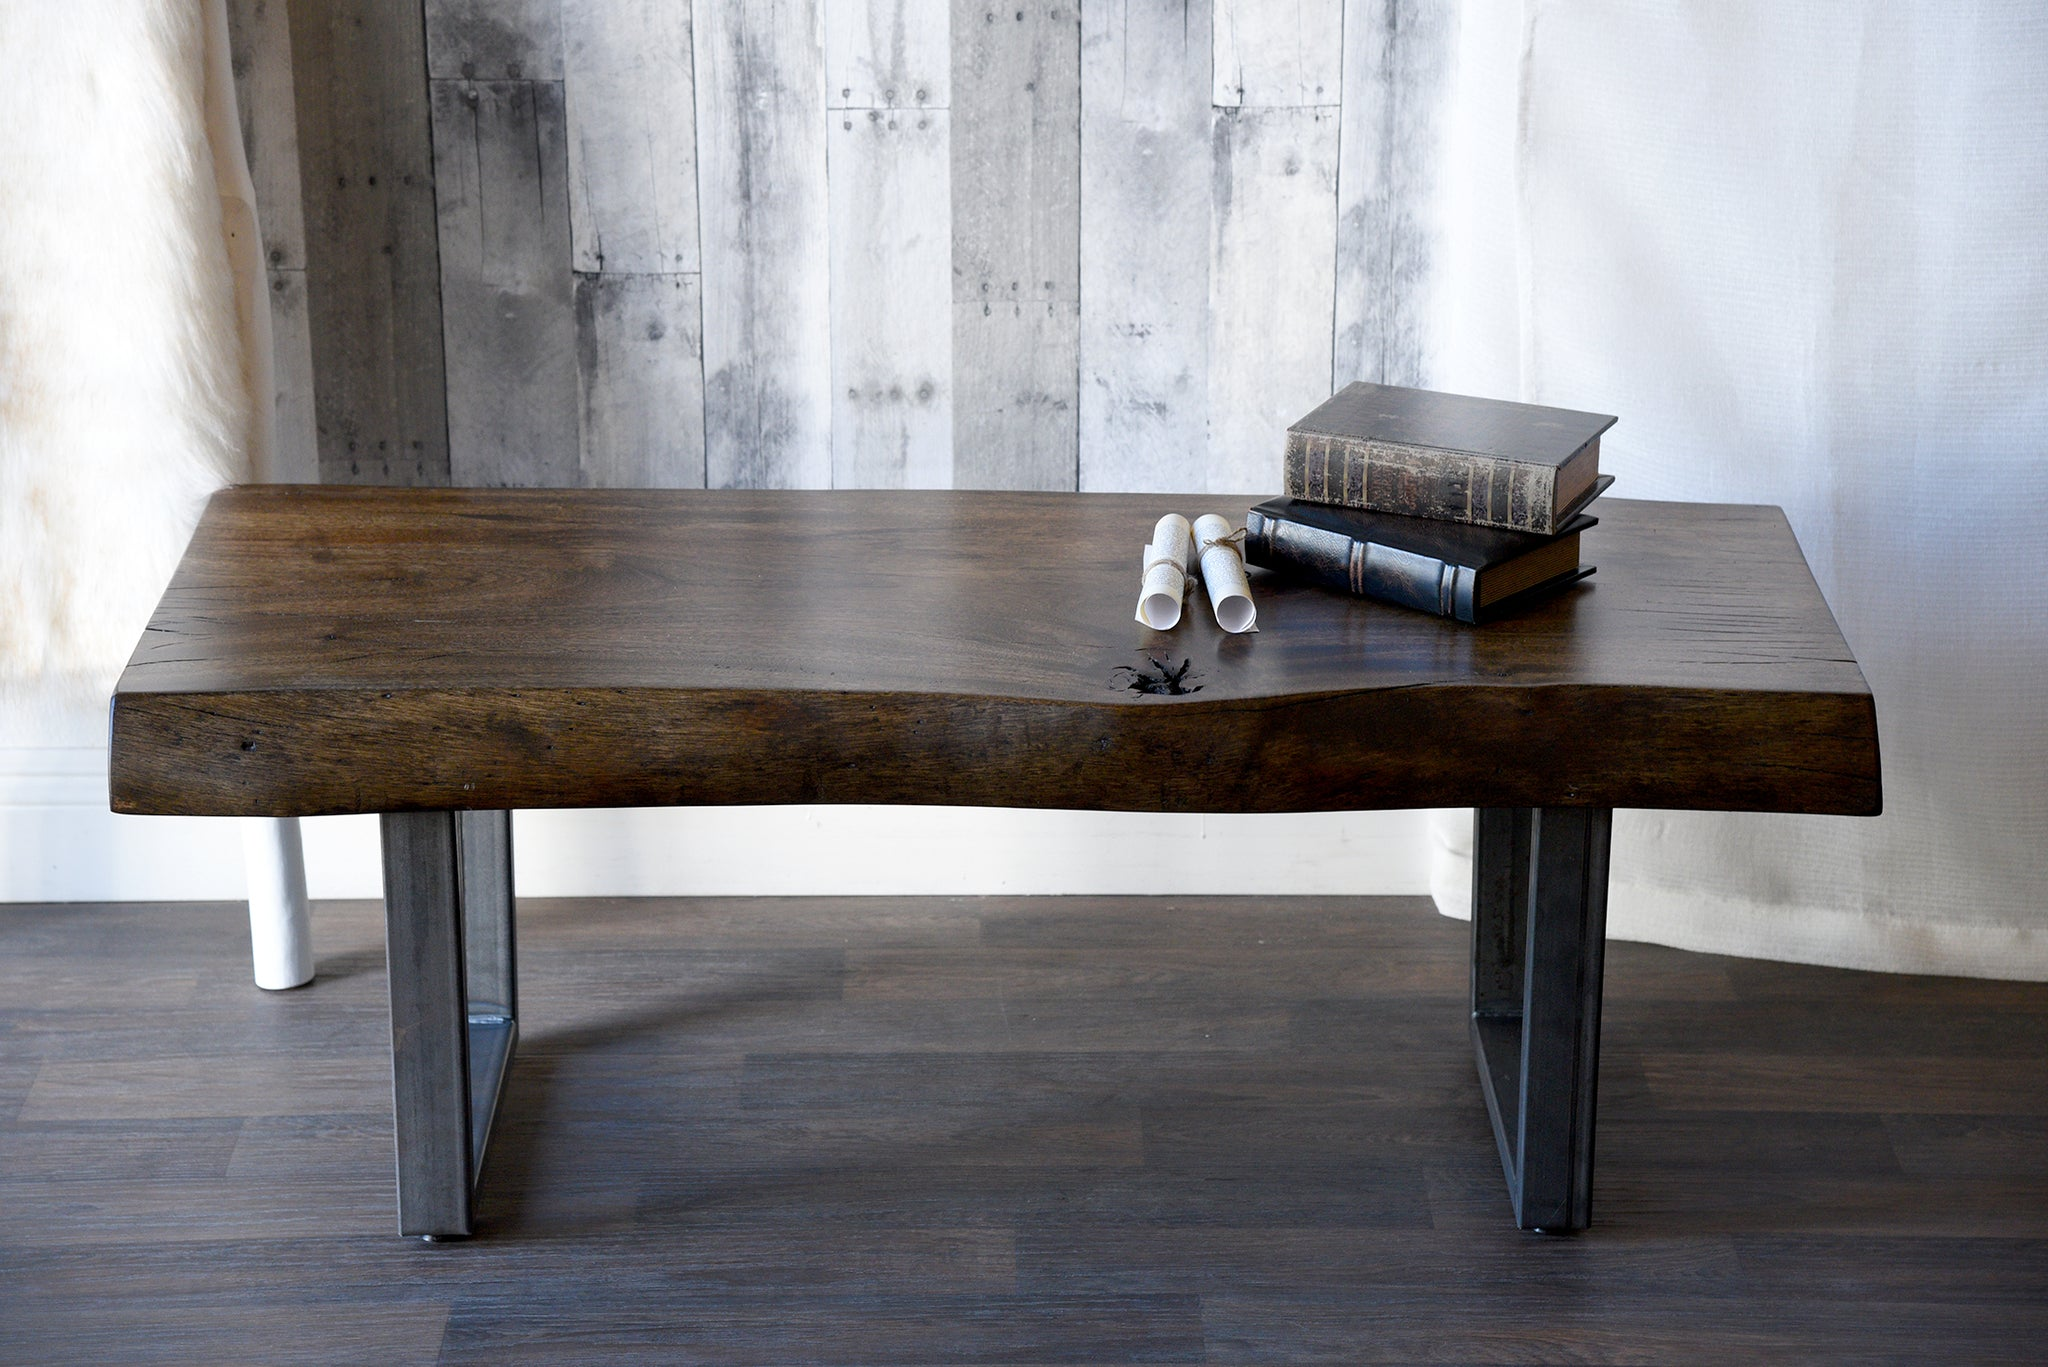 Reclaimed Wood Live Edge Log Coffee Table Bench